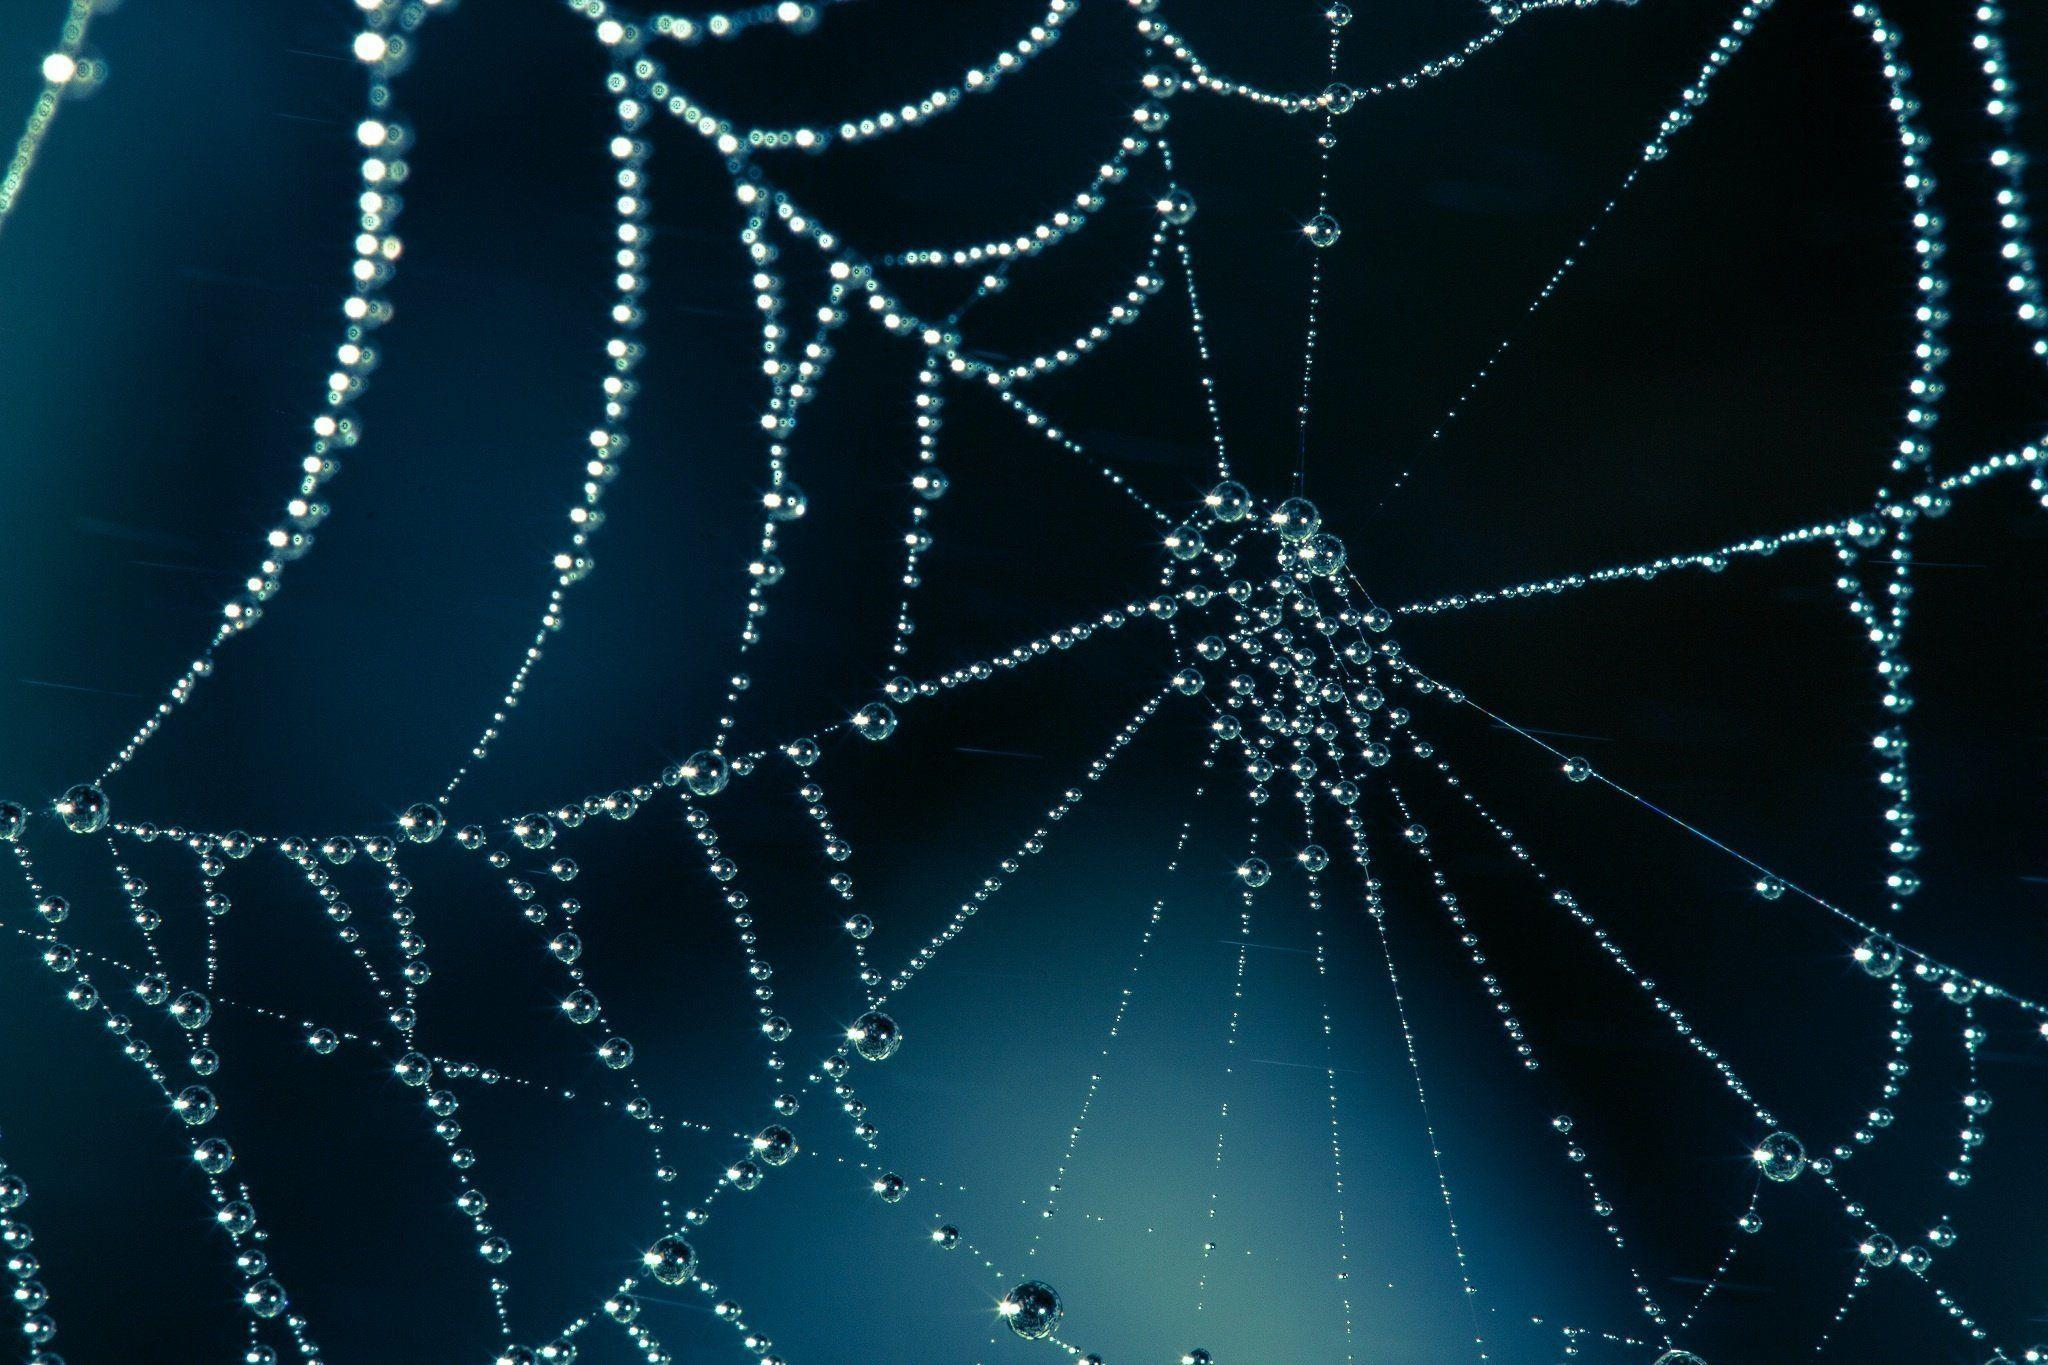 Spider Web Wallpapers 2048x1365